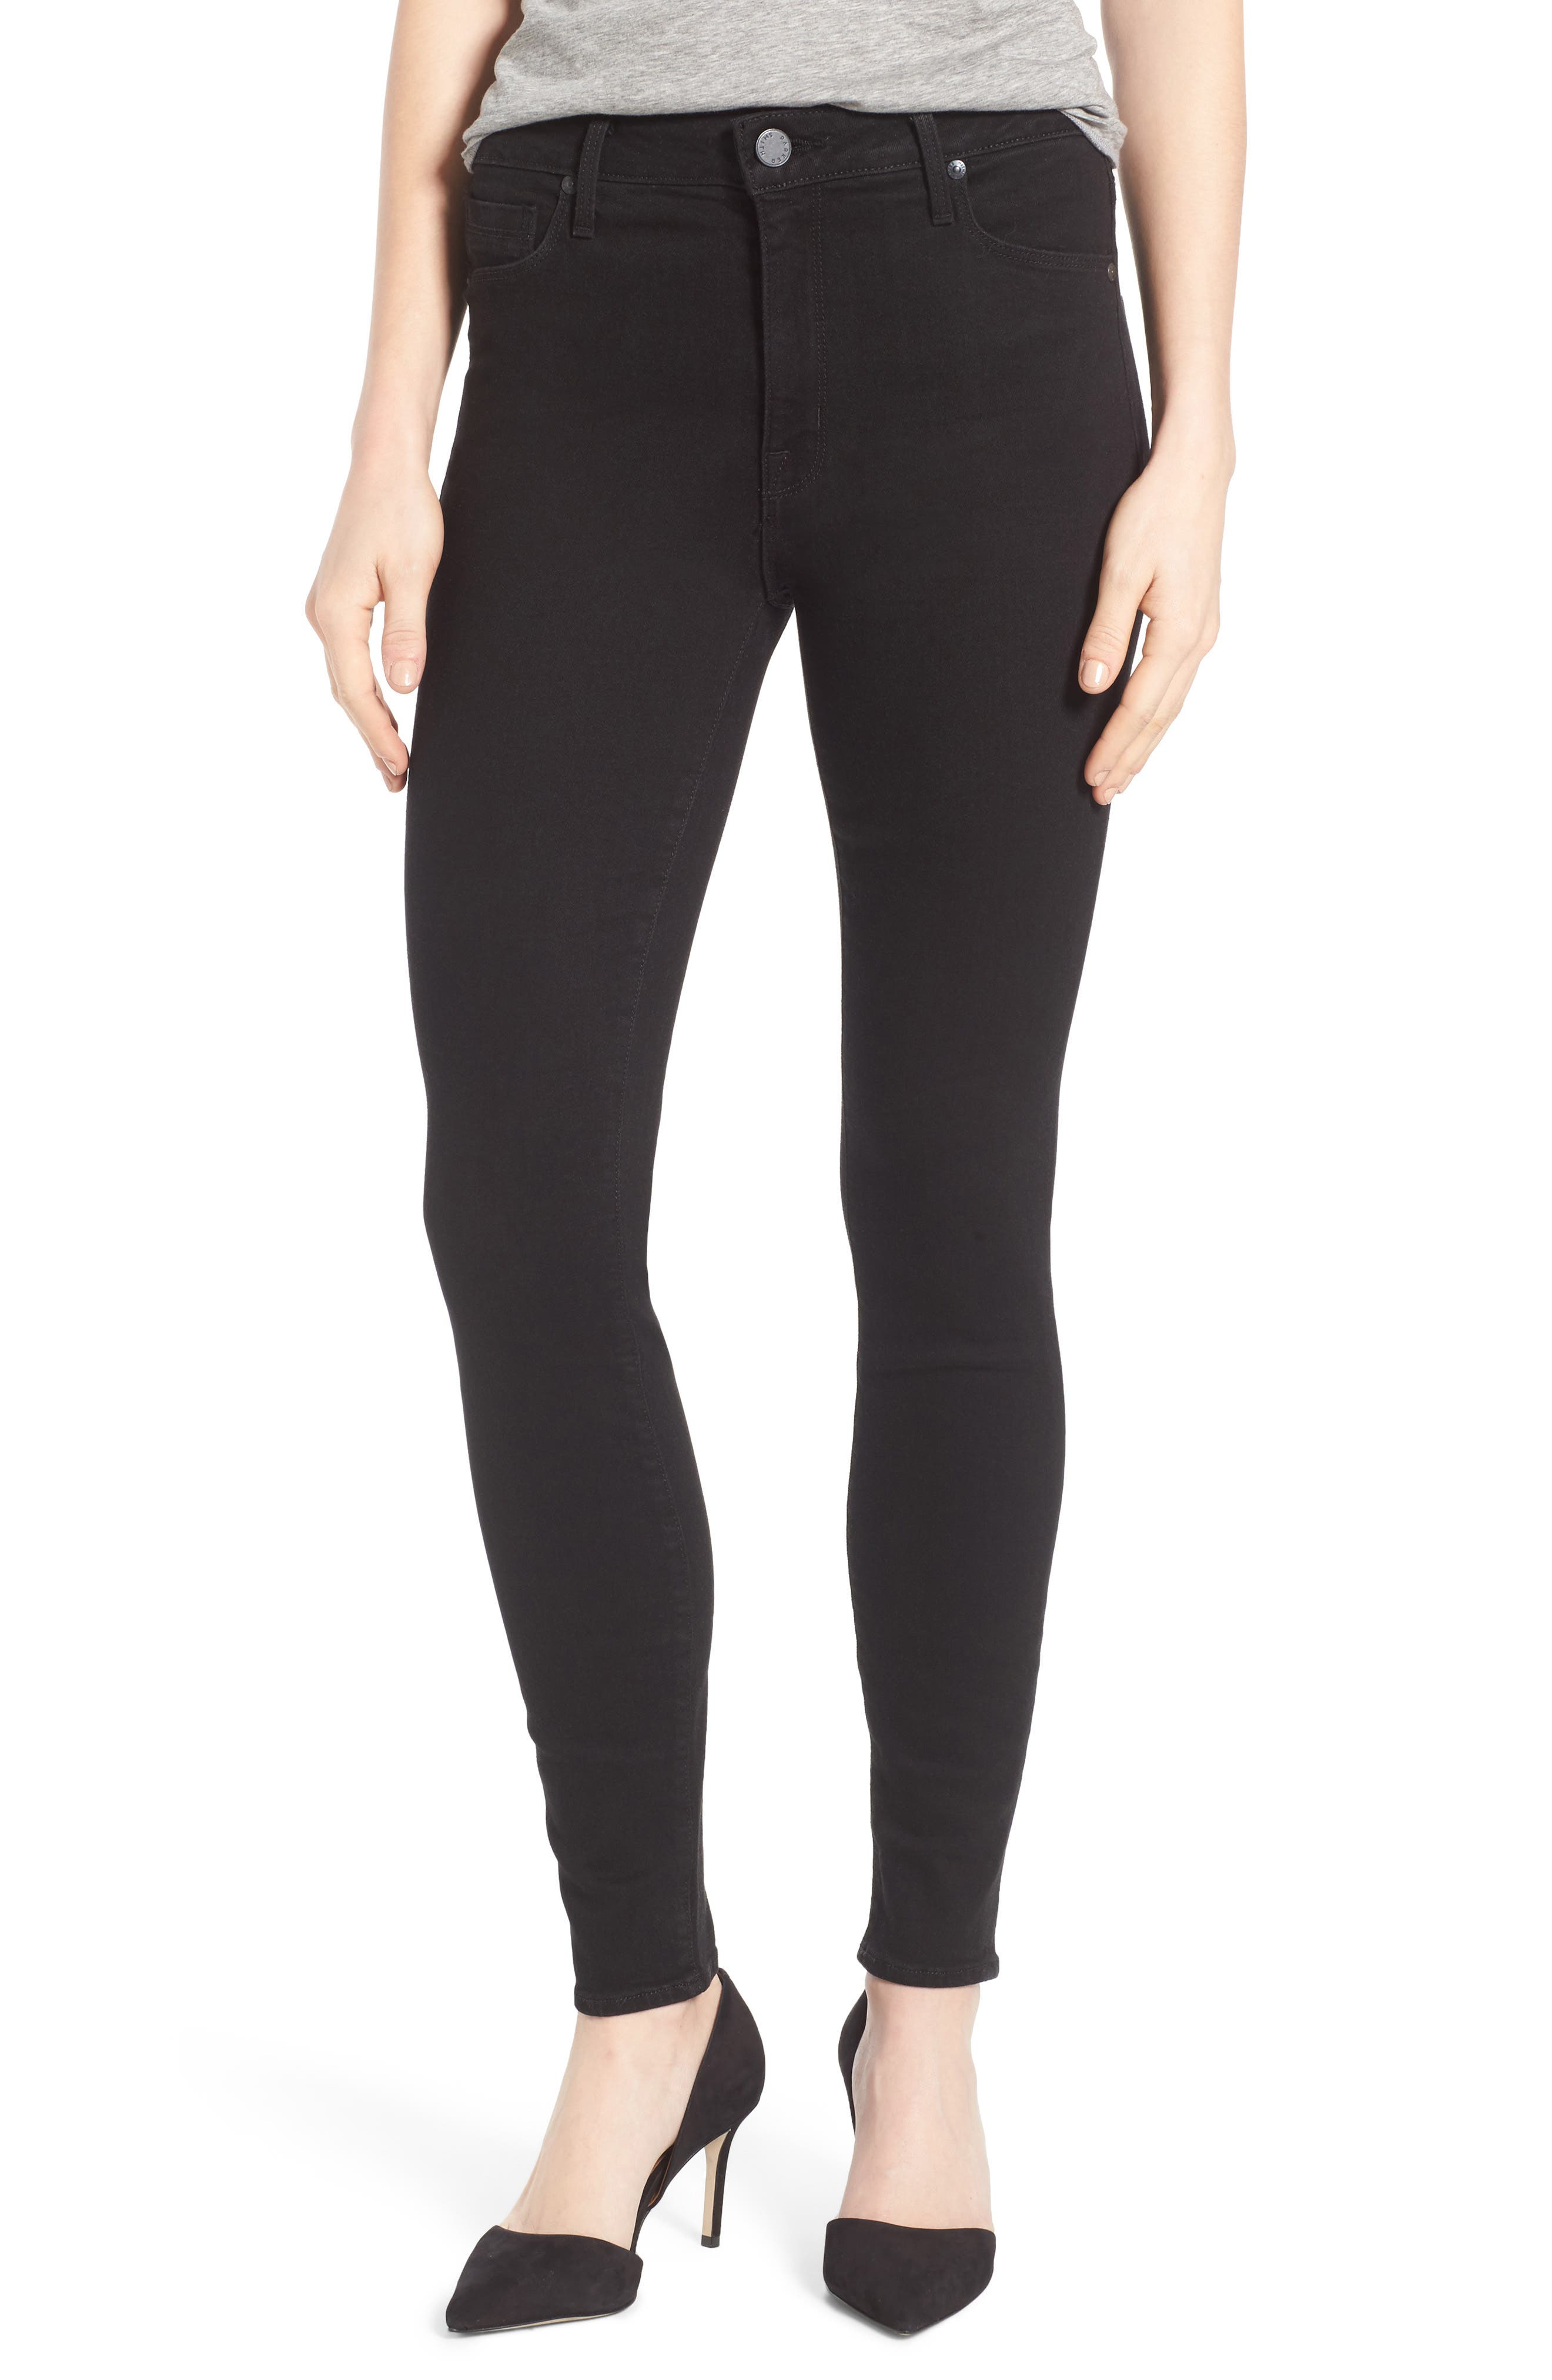 Bombshell High Waist Stretch Skinny Jeans,                         Main,                         color, 001